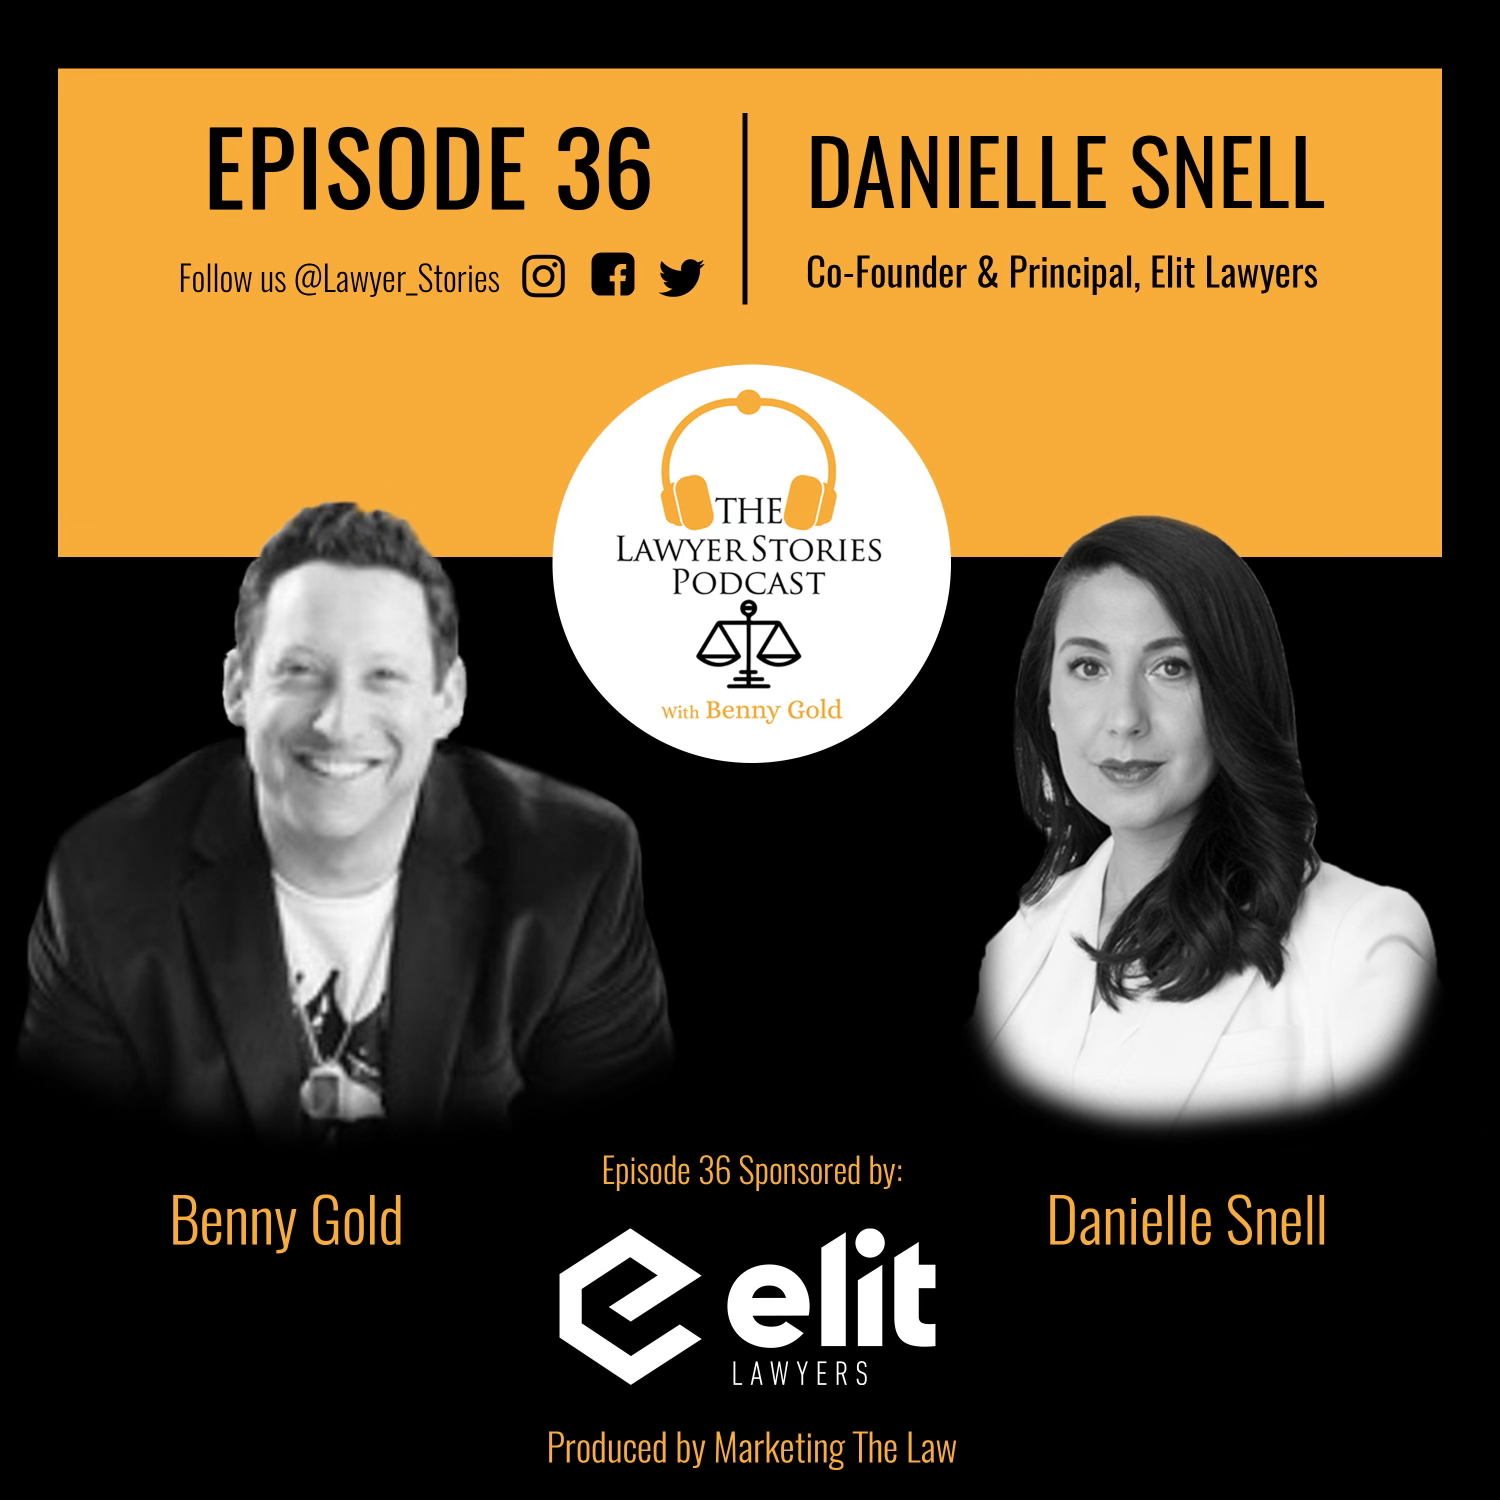 The Lawyer Stories Podcast Episode 36 featuring Danielle Snell